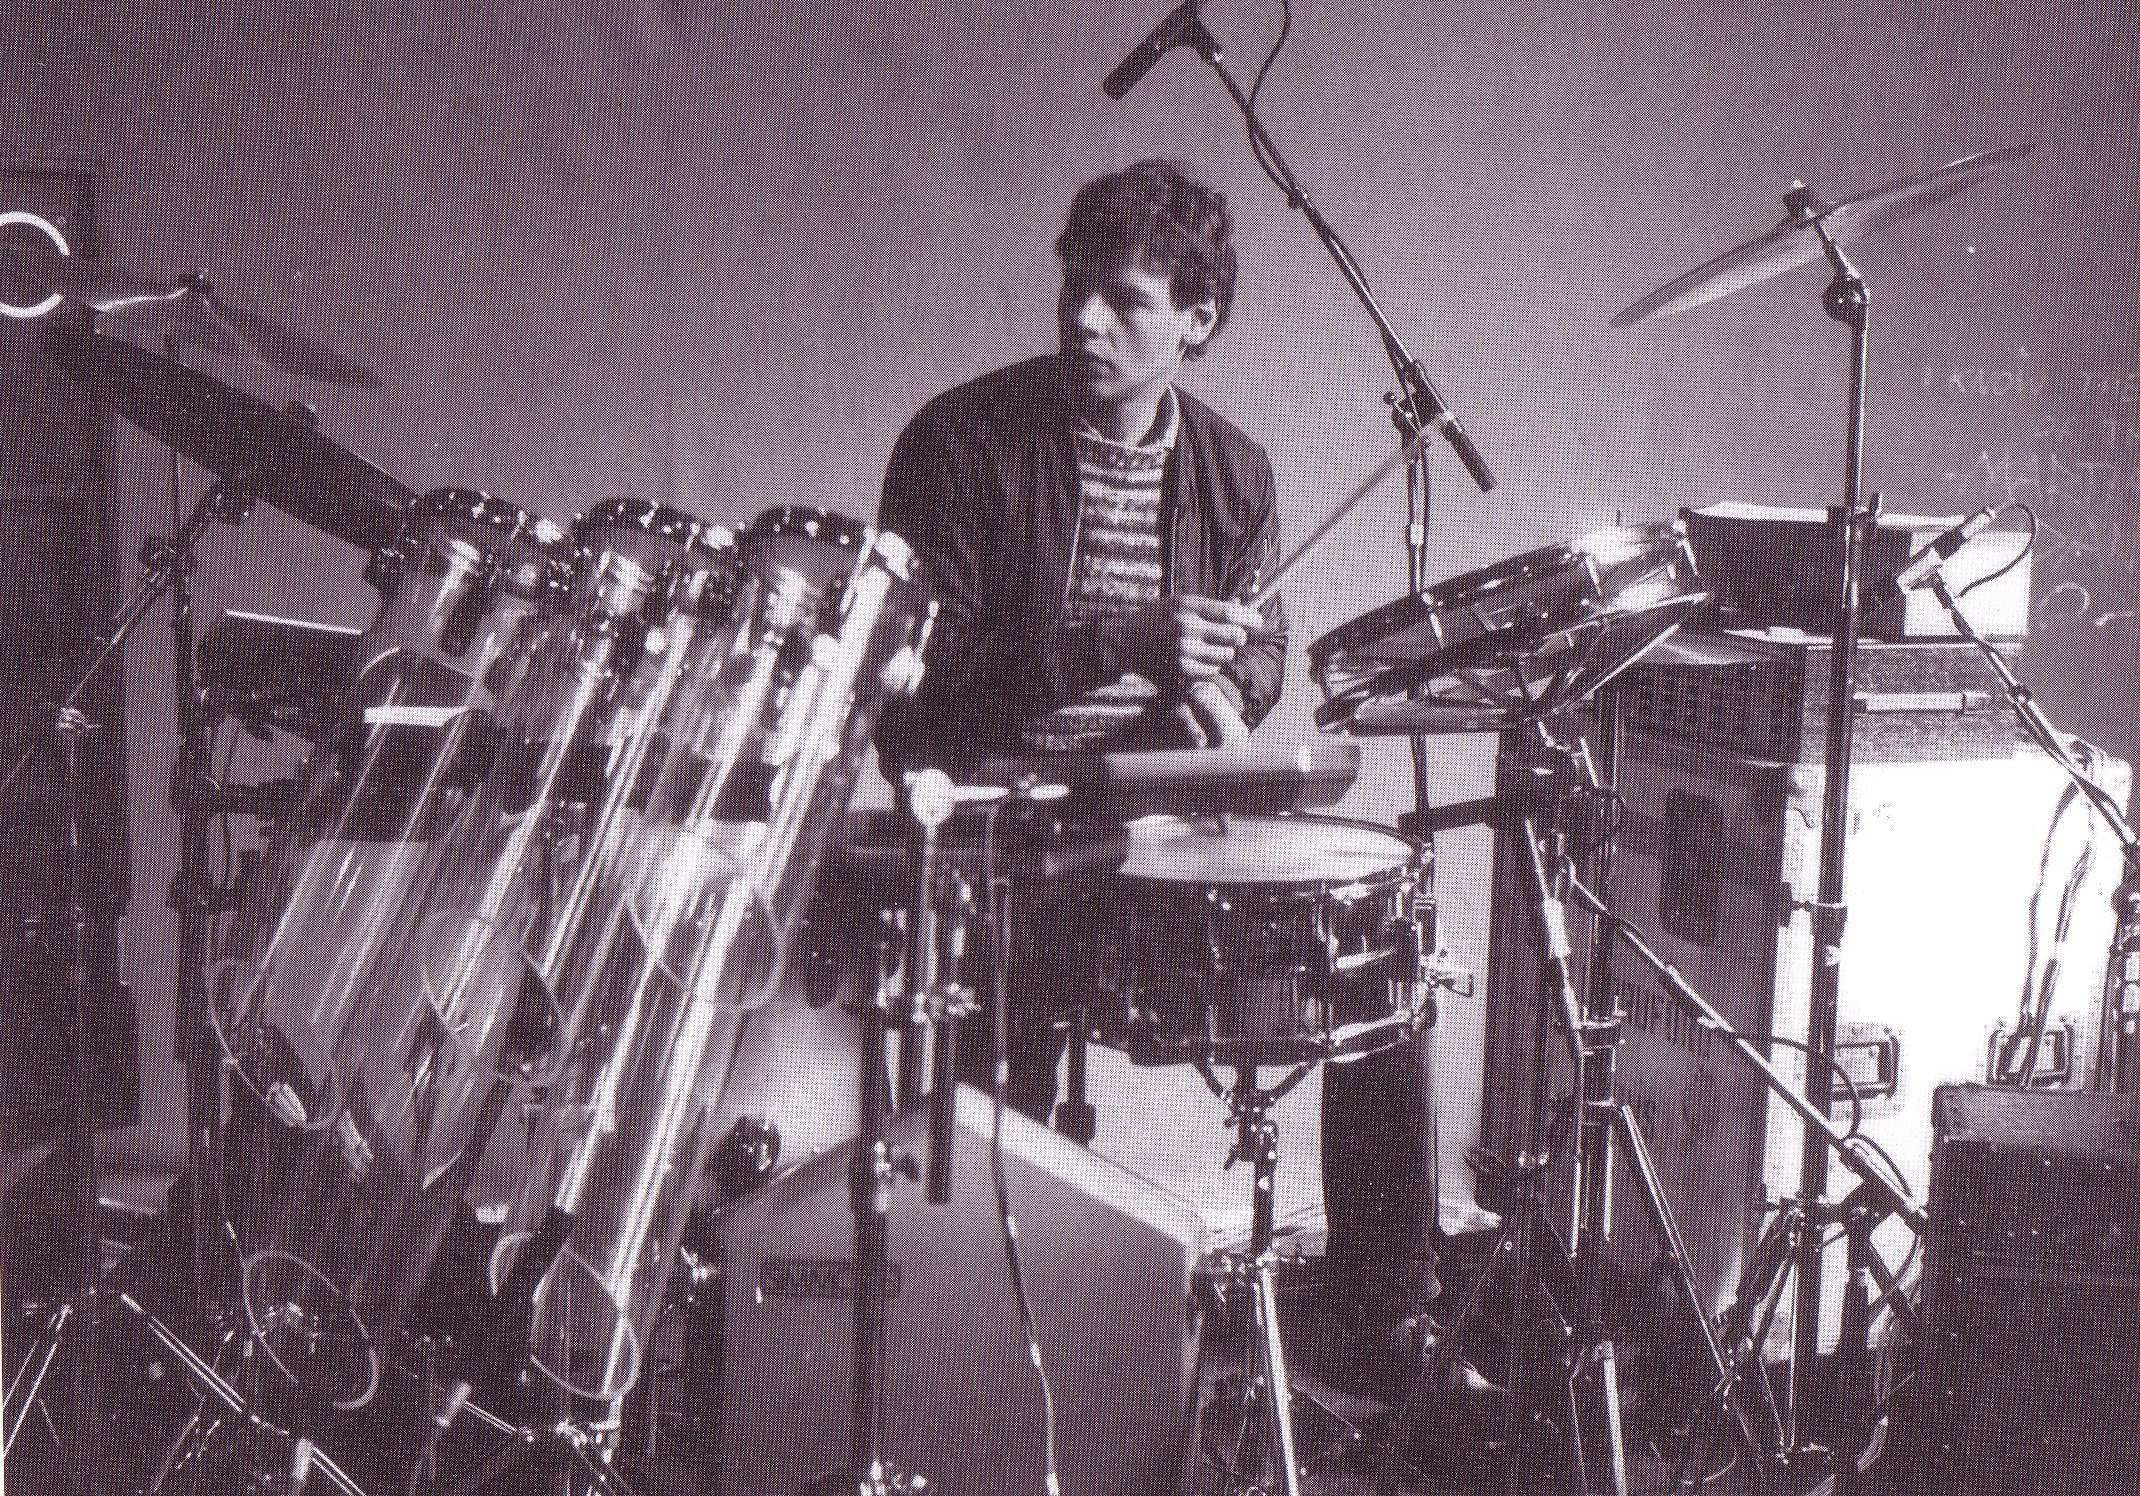 Bill Bruford drummer of Yes and King Crimson. Highly underrated percussionist! | Bill bruford, Drummer, Drums